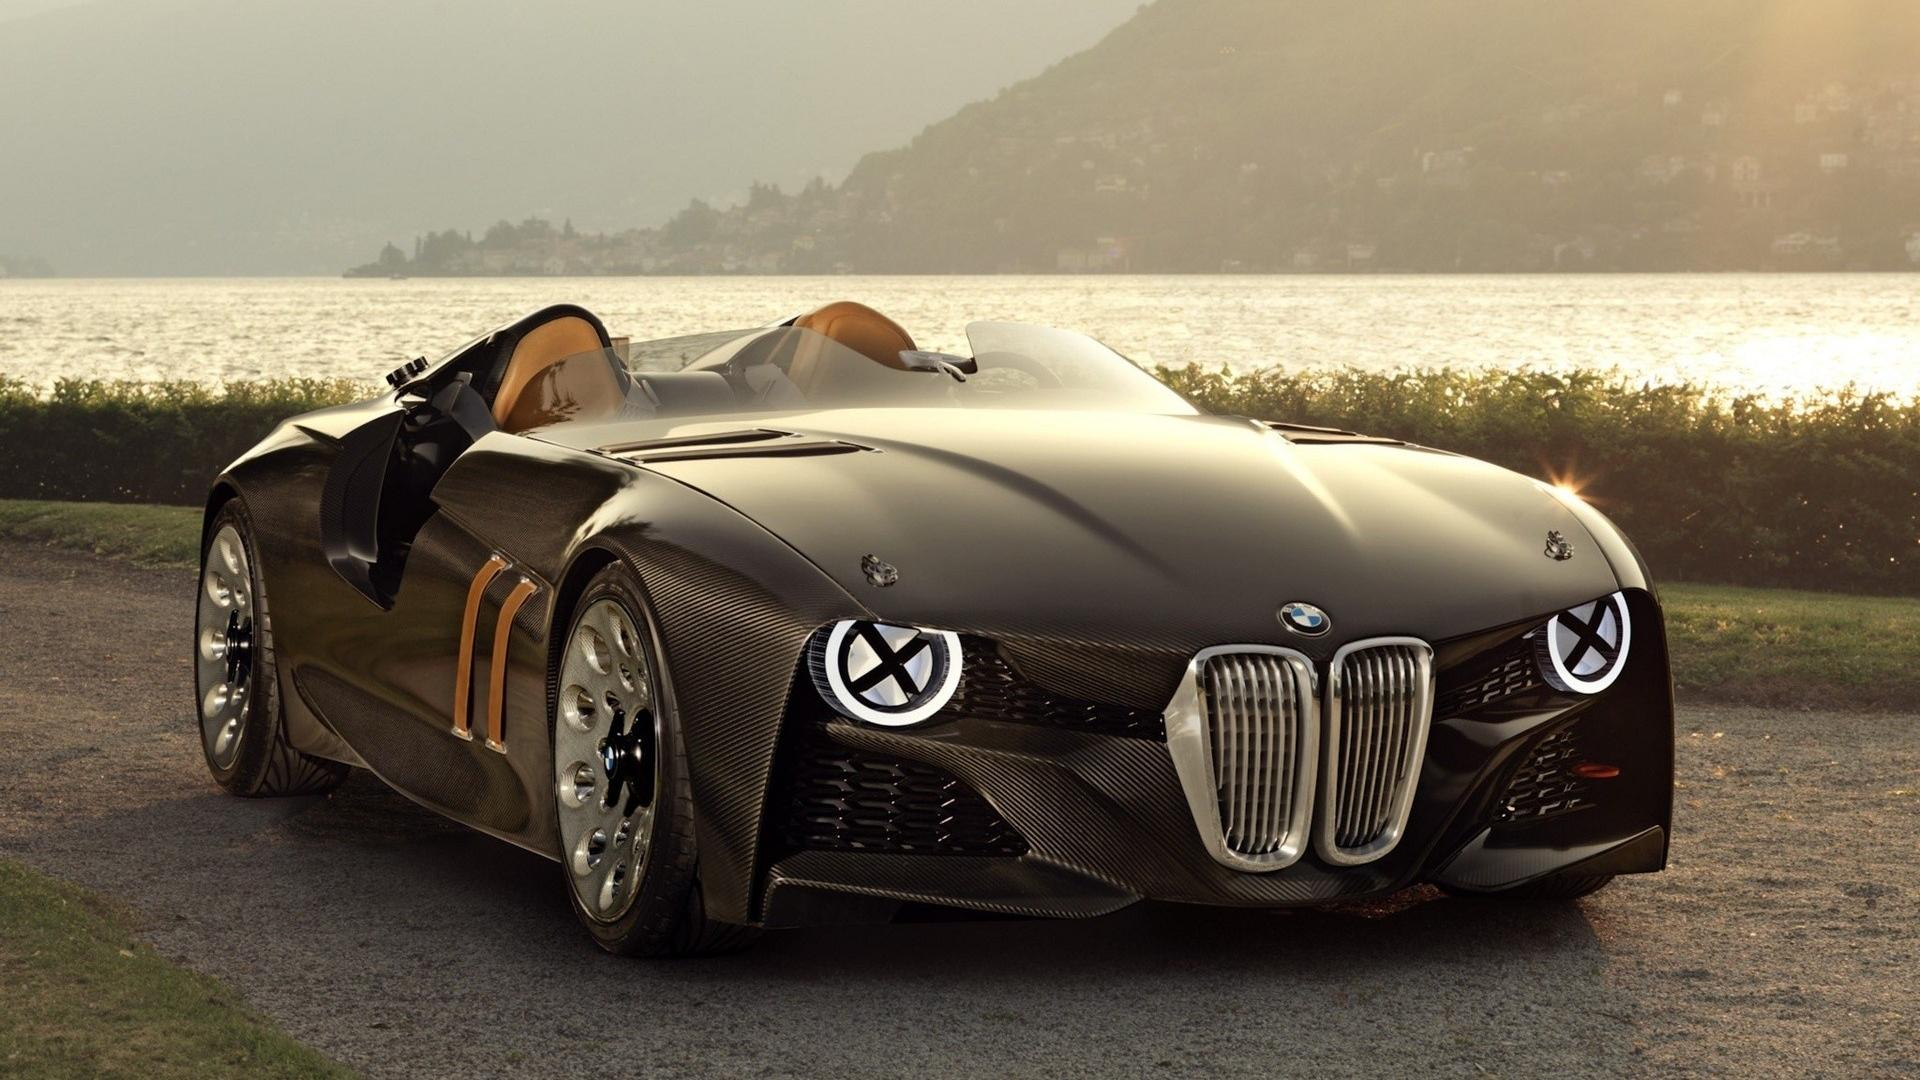 Bmw-Cars-Hd-Viewing-Gallery-1920x1080PX-Custom-Car-wallpaper-wpc5802951